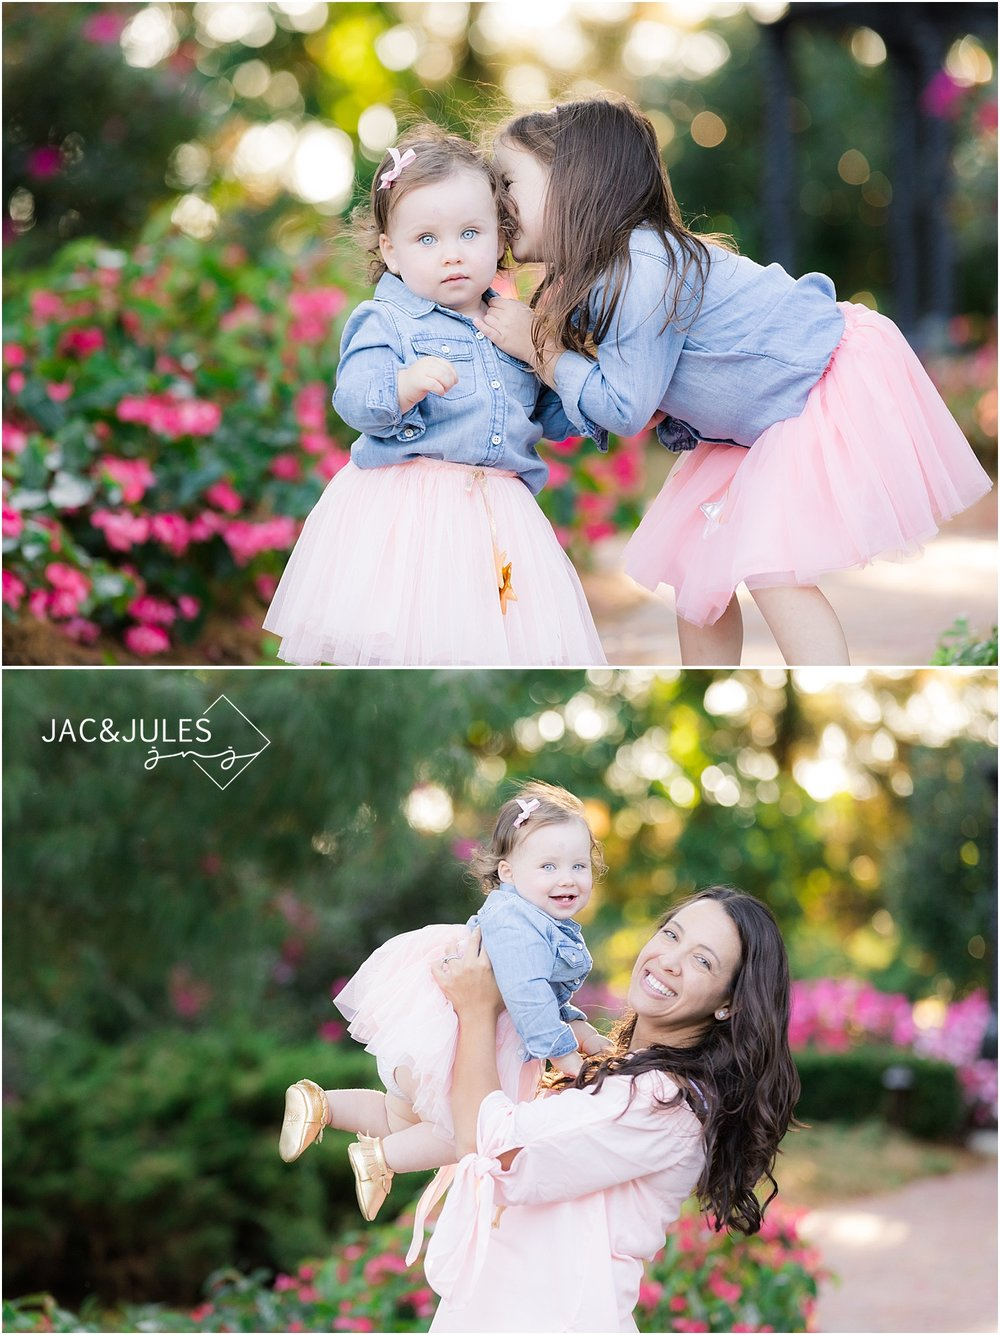 jacnjules photographs family at weddings of distinction venue in nj